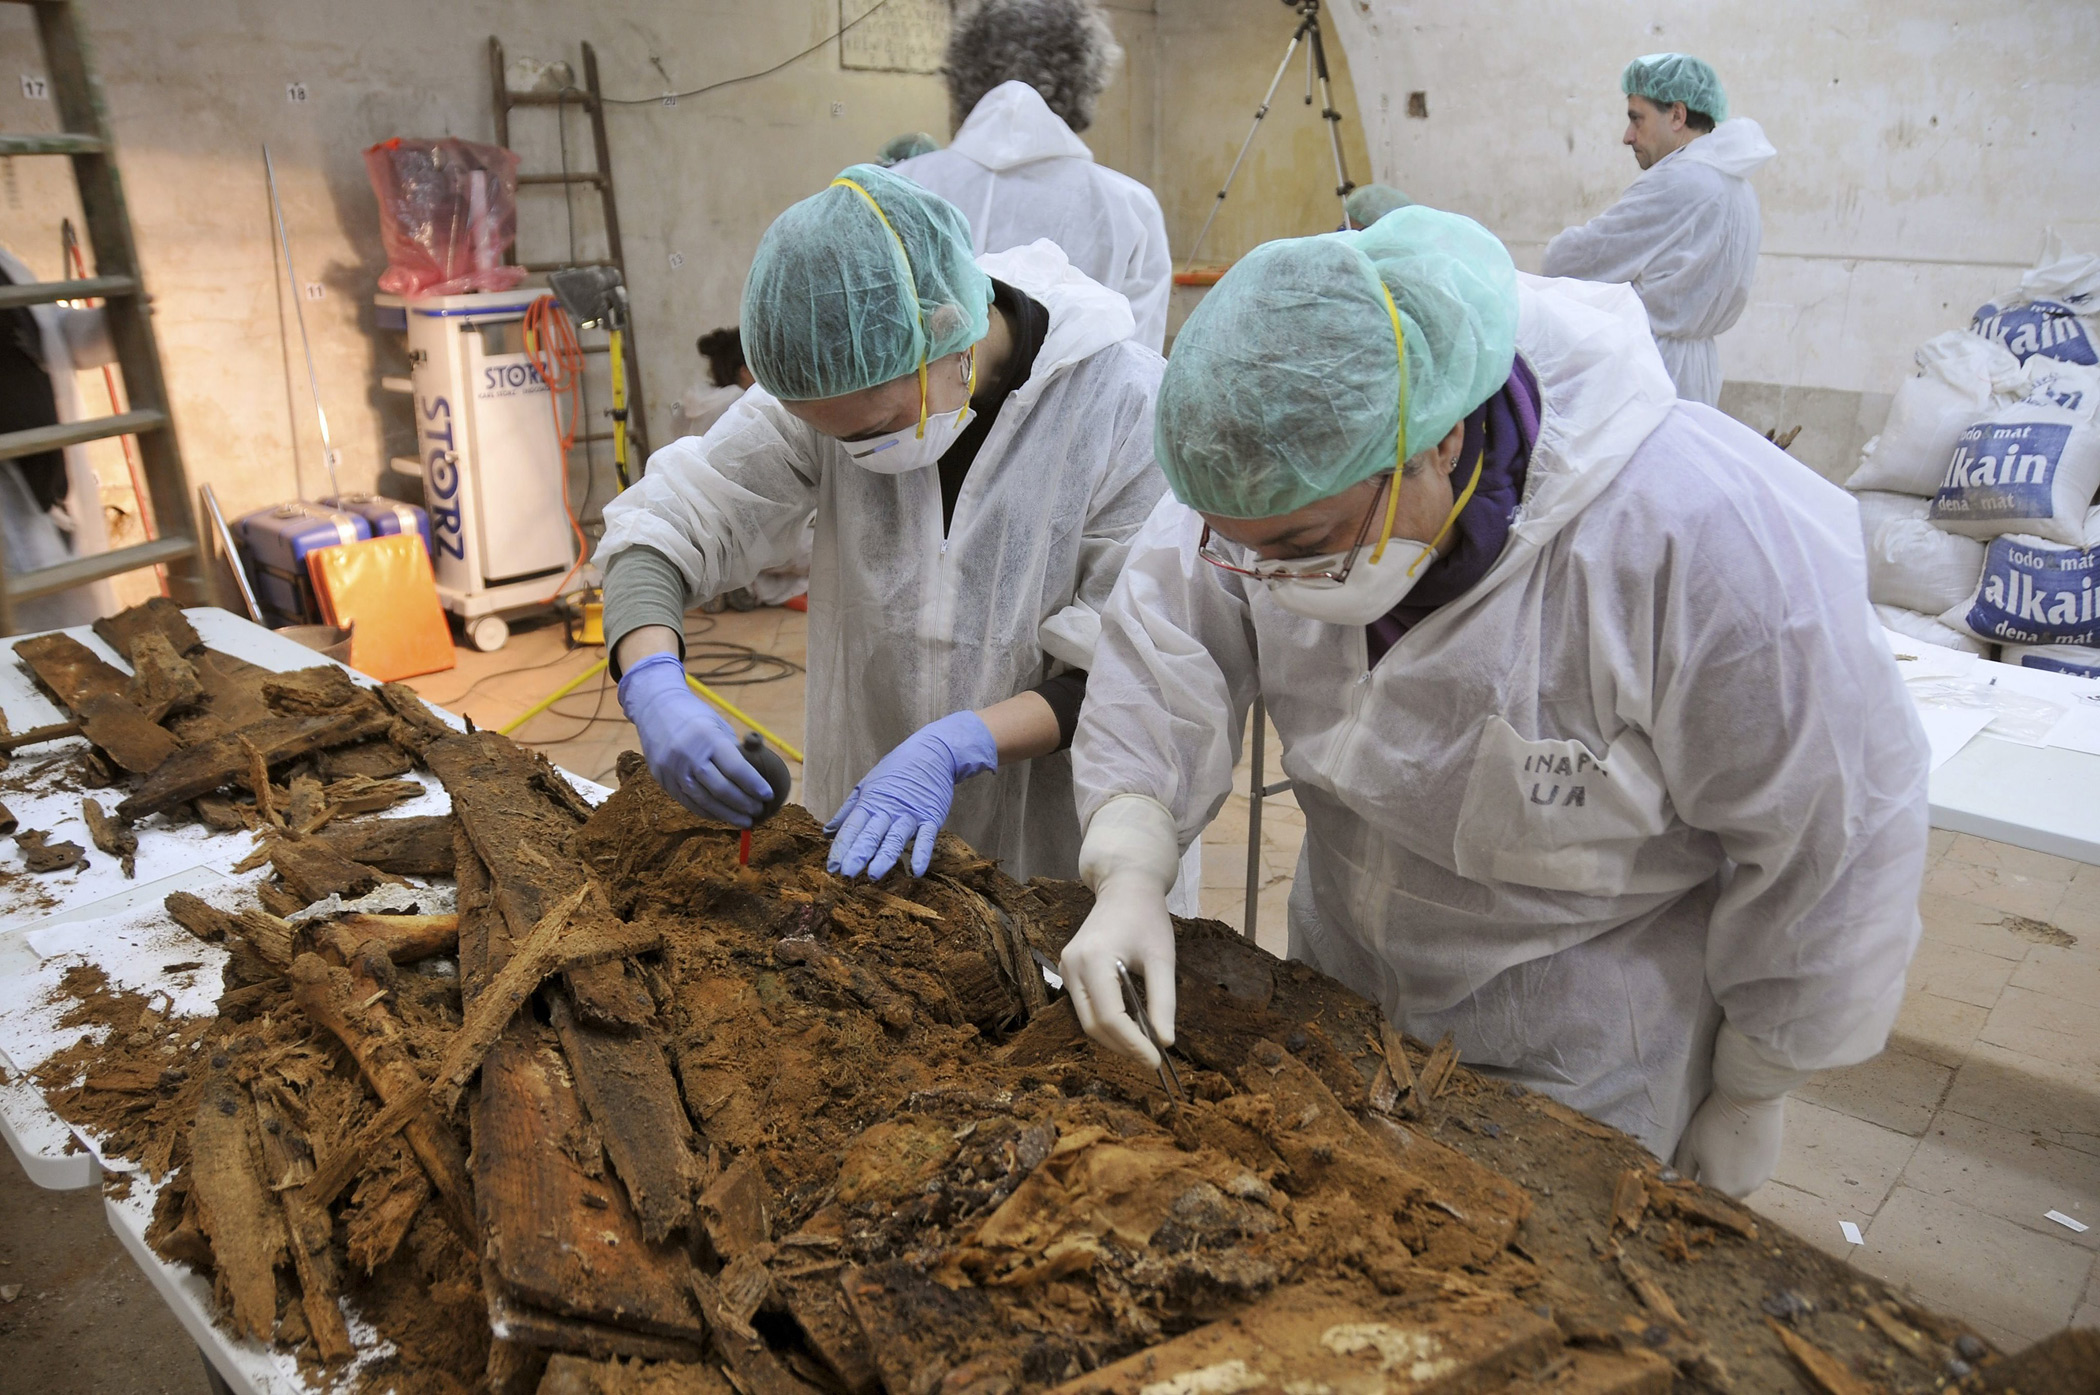 Forensic and anthropology experts labor to find Spanish writer Miguel de Cervantes' human remains at Trinitarias Convent's crypt in Madrid, Spain.